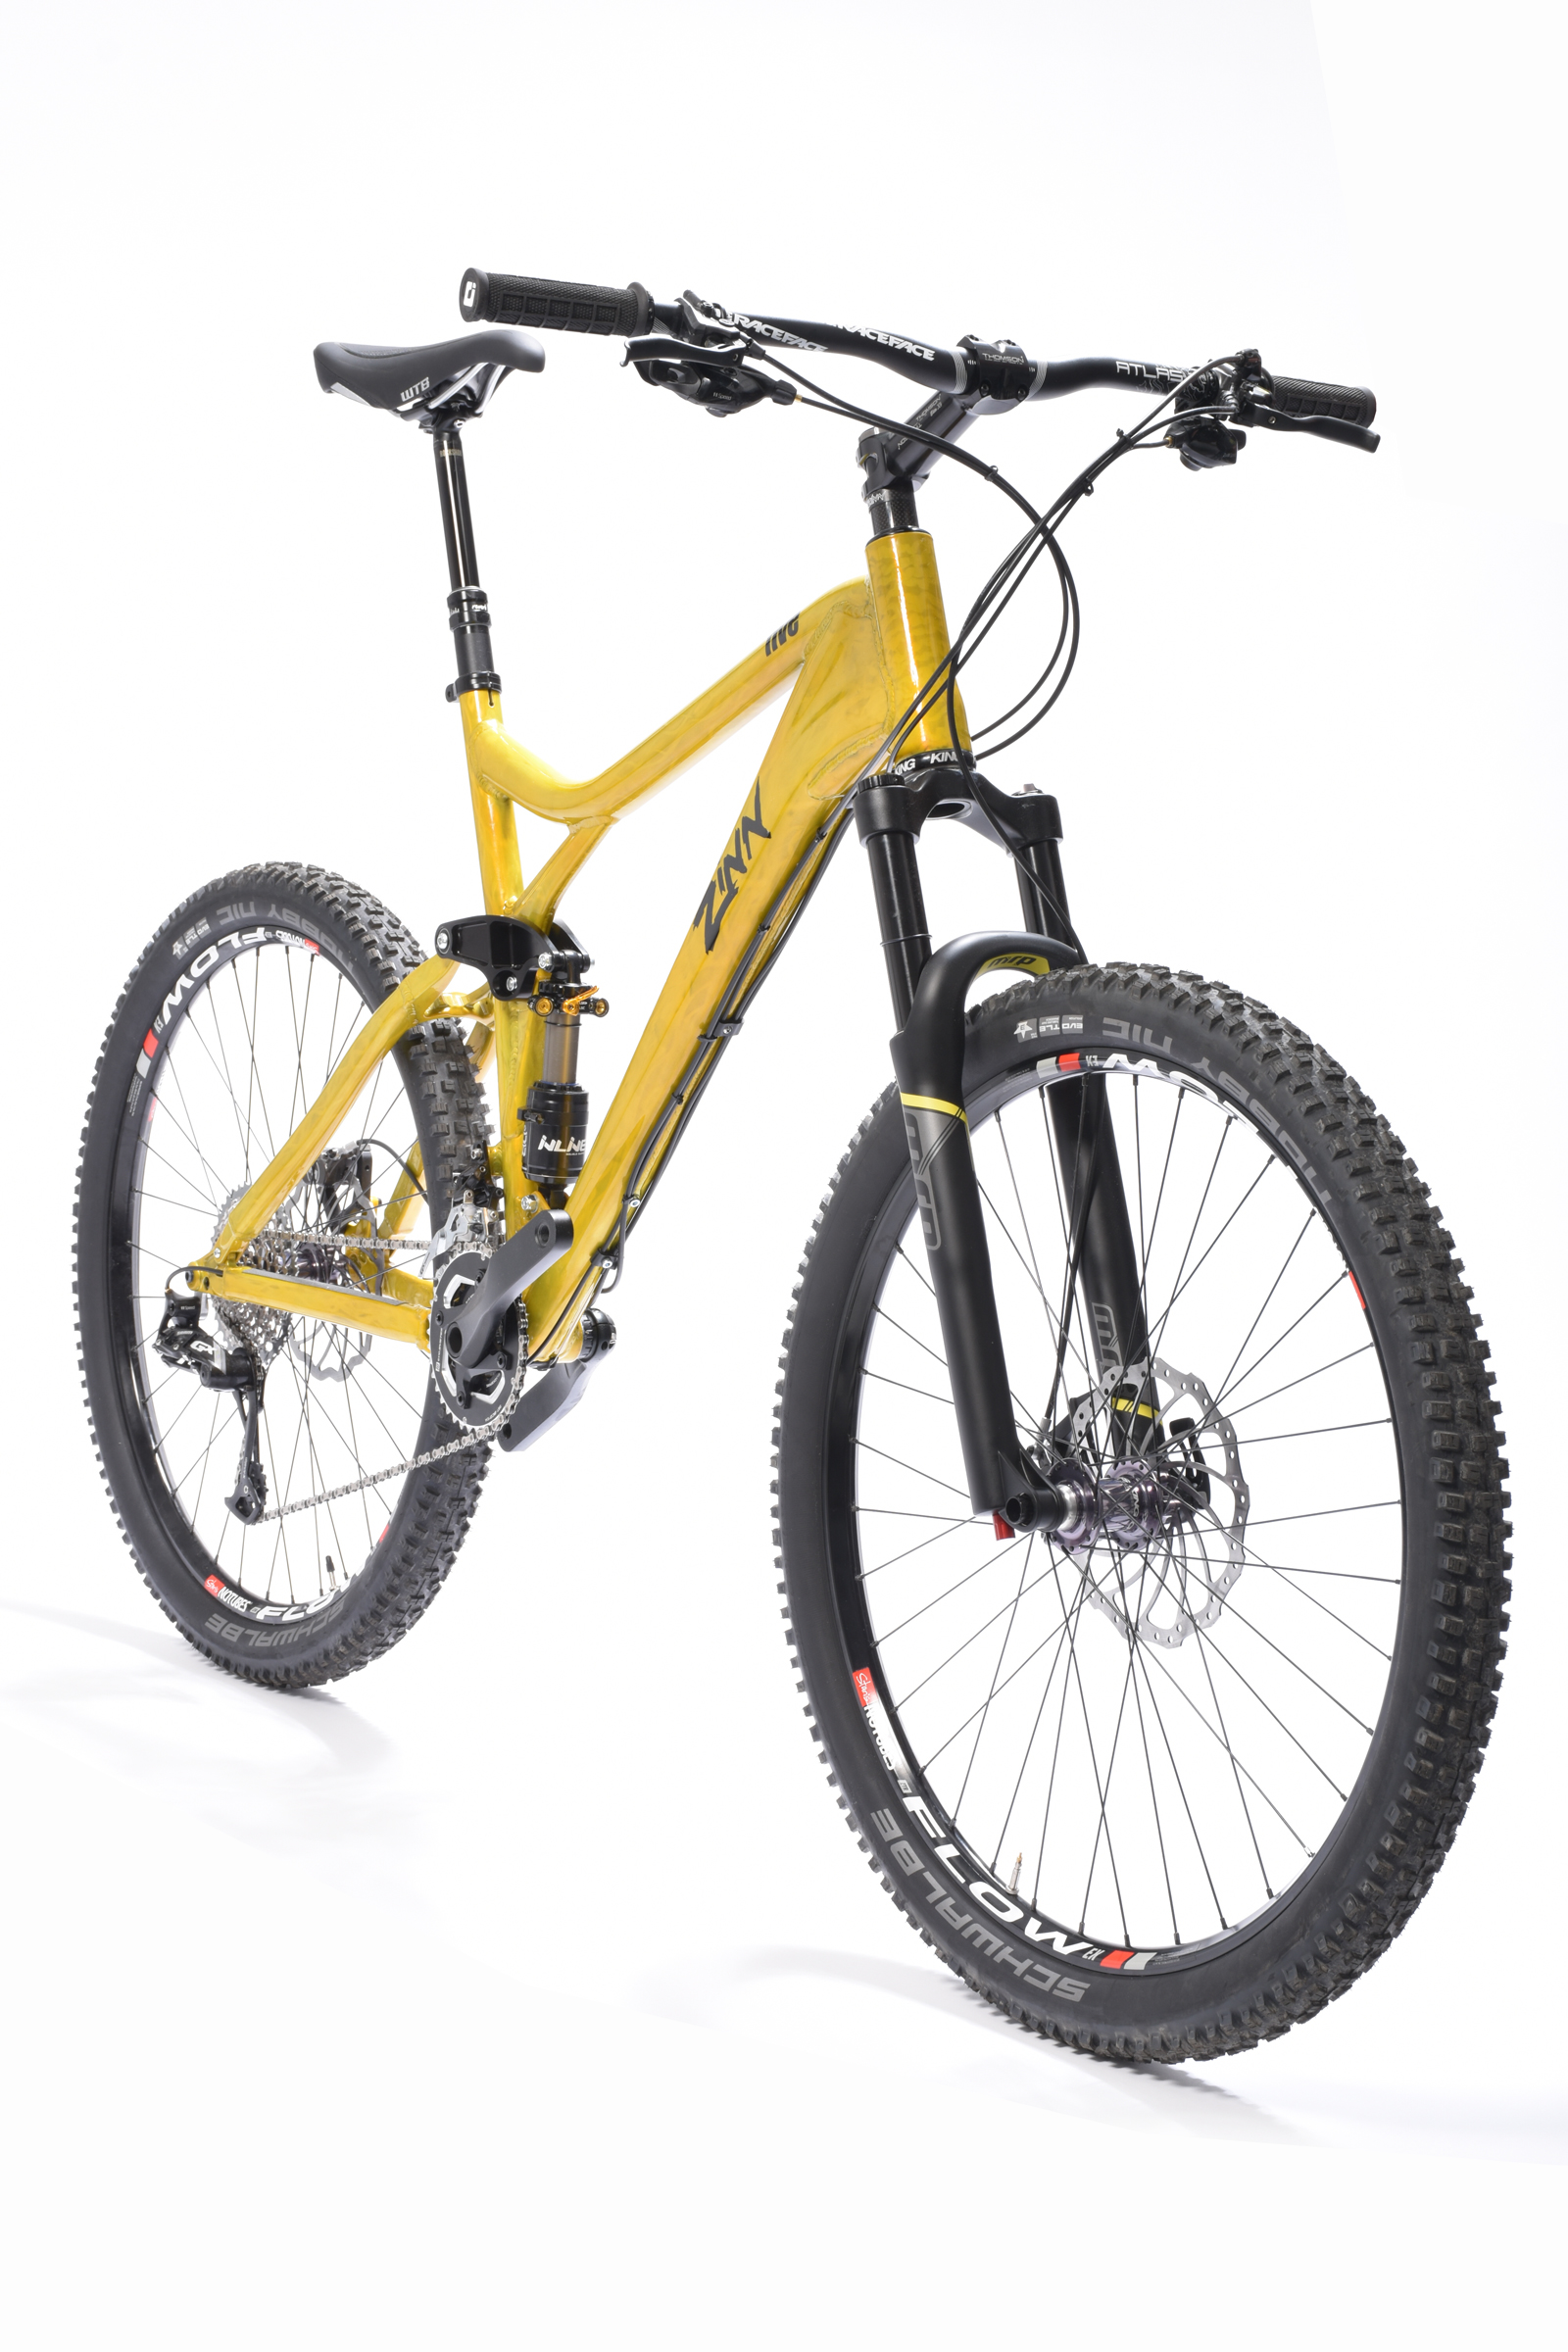 Dual Suspension Mountain Bike Frames Page 7 Frame Design Mosso 669 Xc Pro Stradalli Two7 White Edition Full Carbon Fiber Source Zinn B I G Series Add Components Below